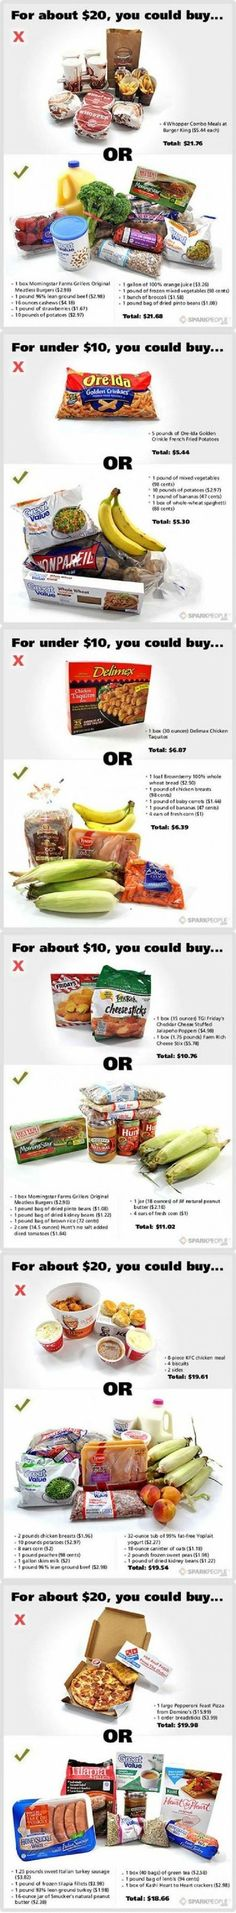 Food Cost  Comparisons